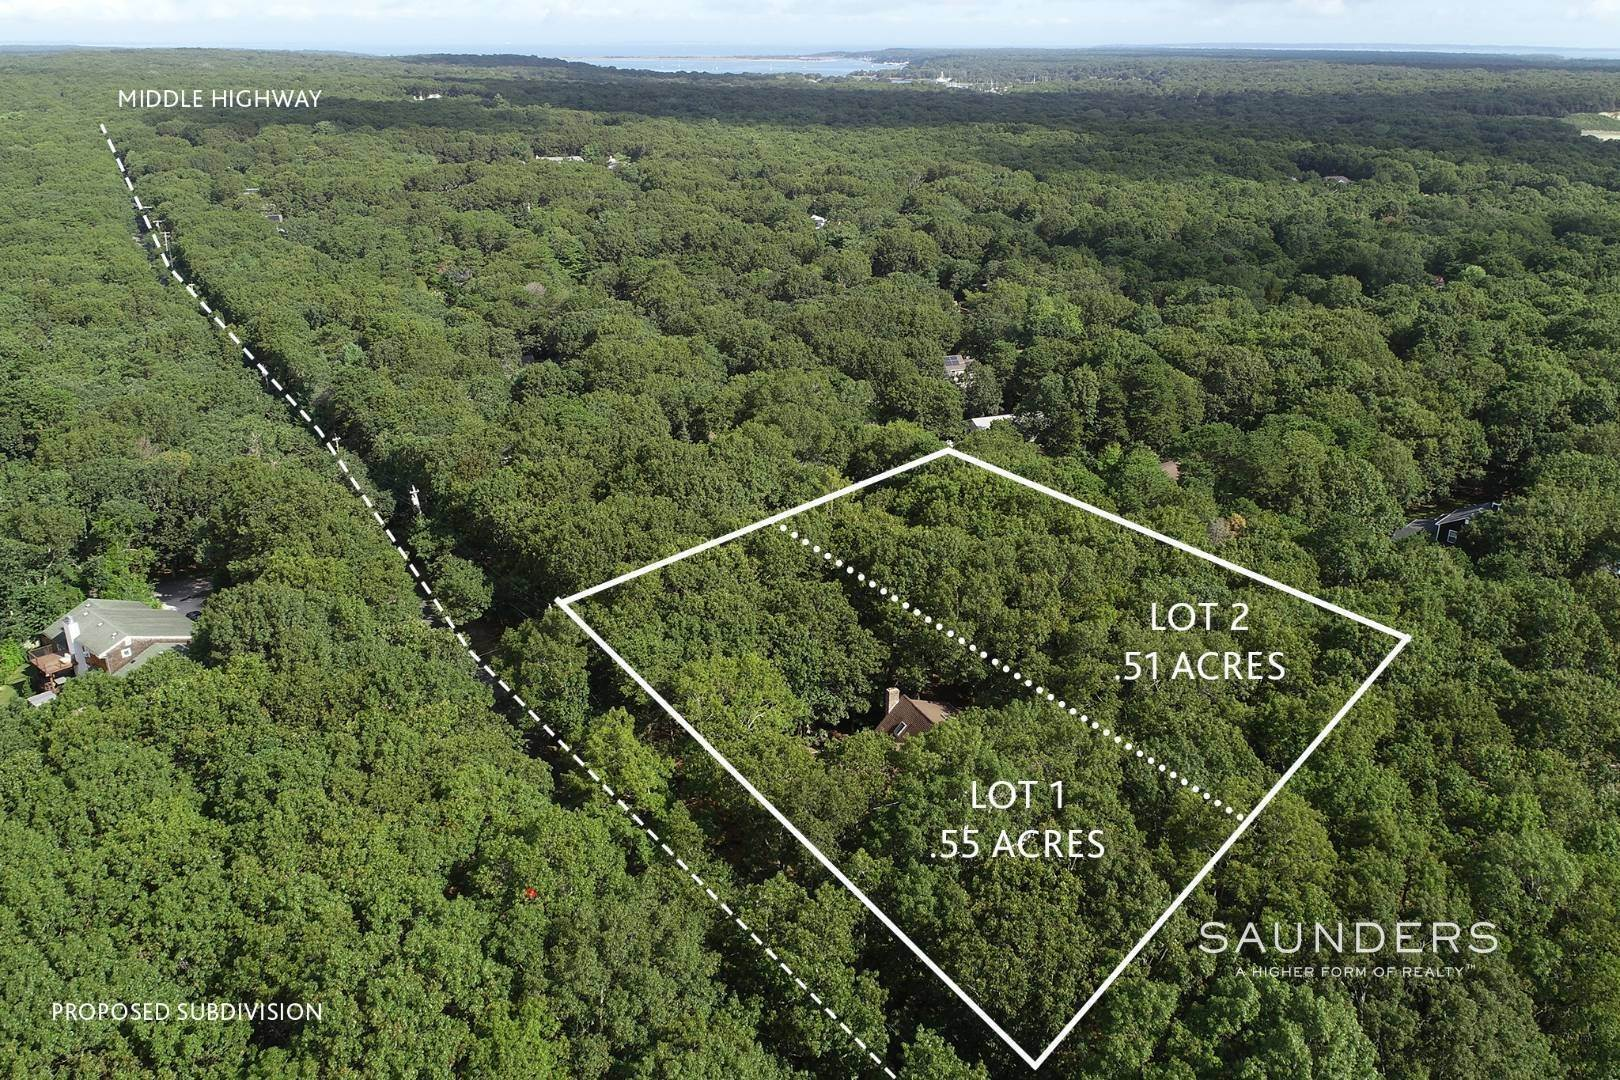 Single Family Homes for Sale at Village Fringe Acre With Subdivision Potential 79 Middle Highway, East Hampton, East Hampton Town, NY 11937